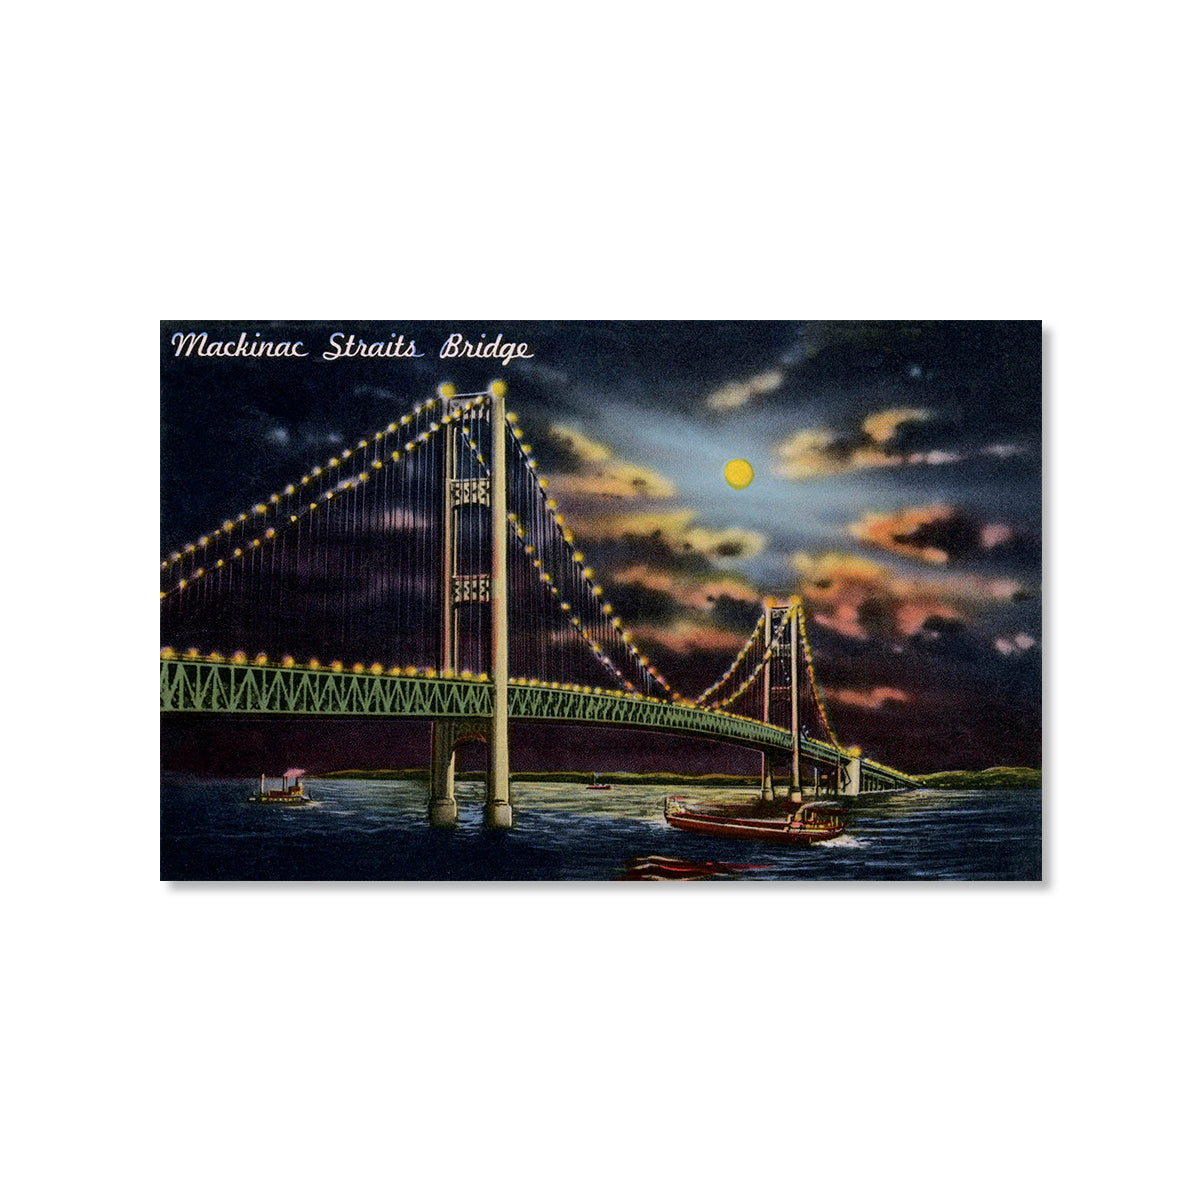 Mackinac Bridge at Night Postcard